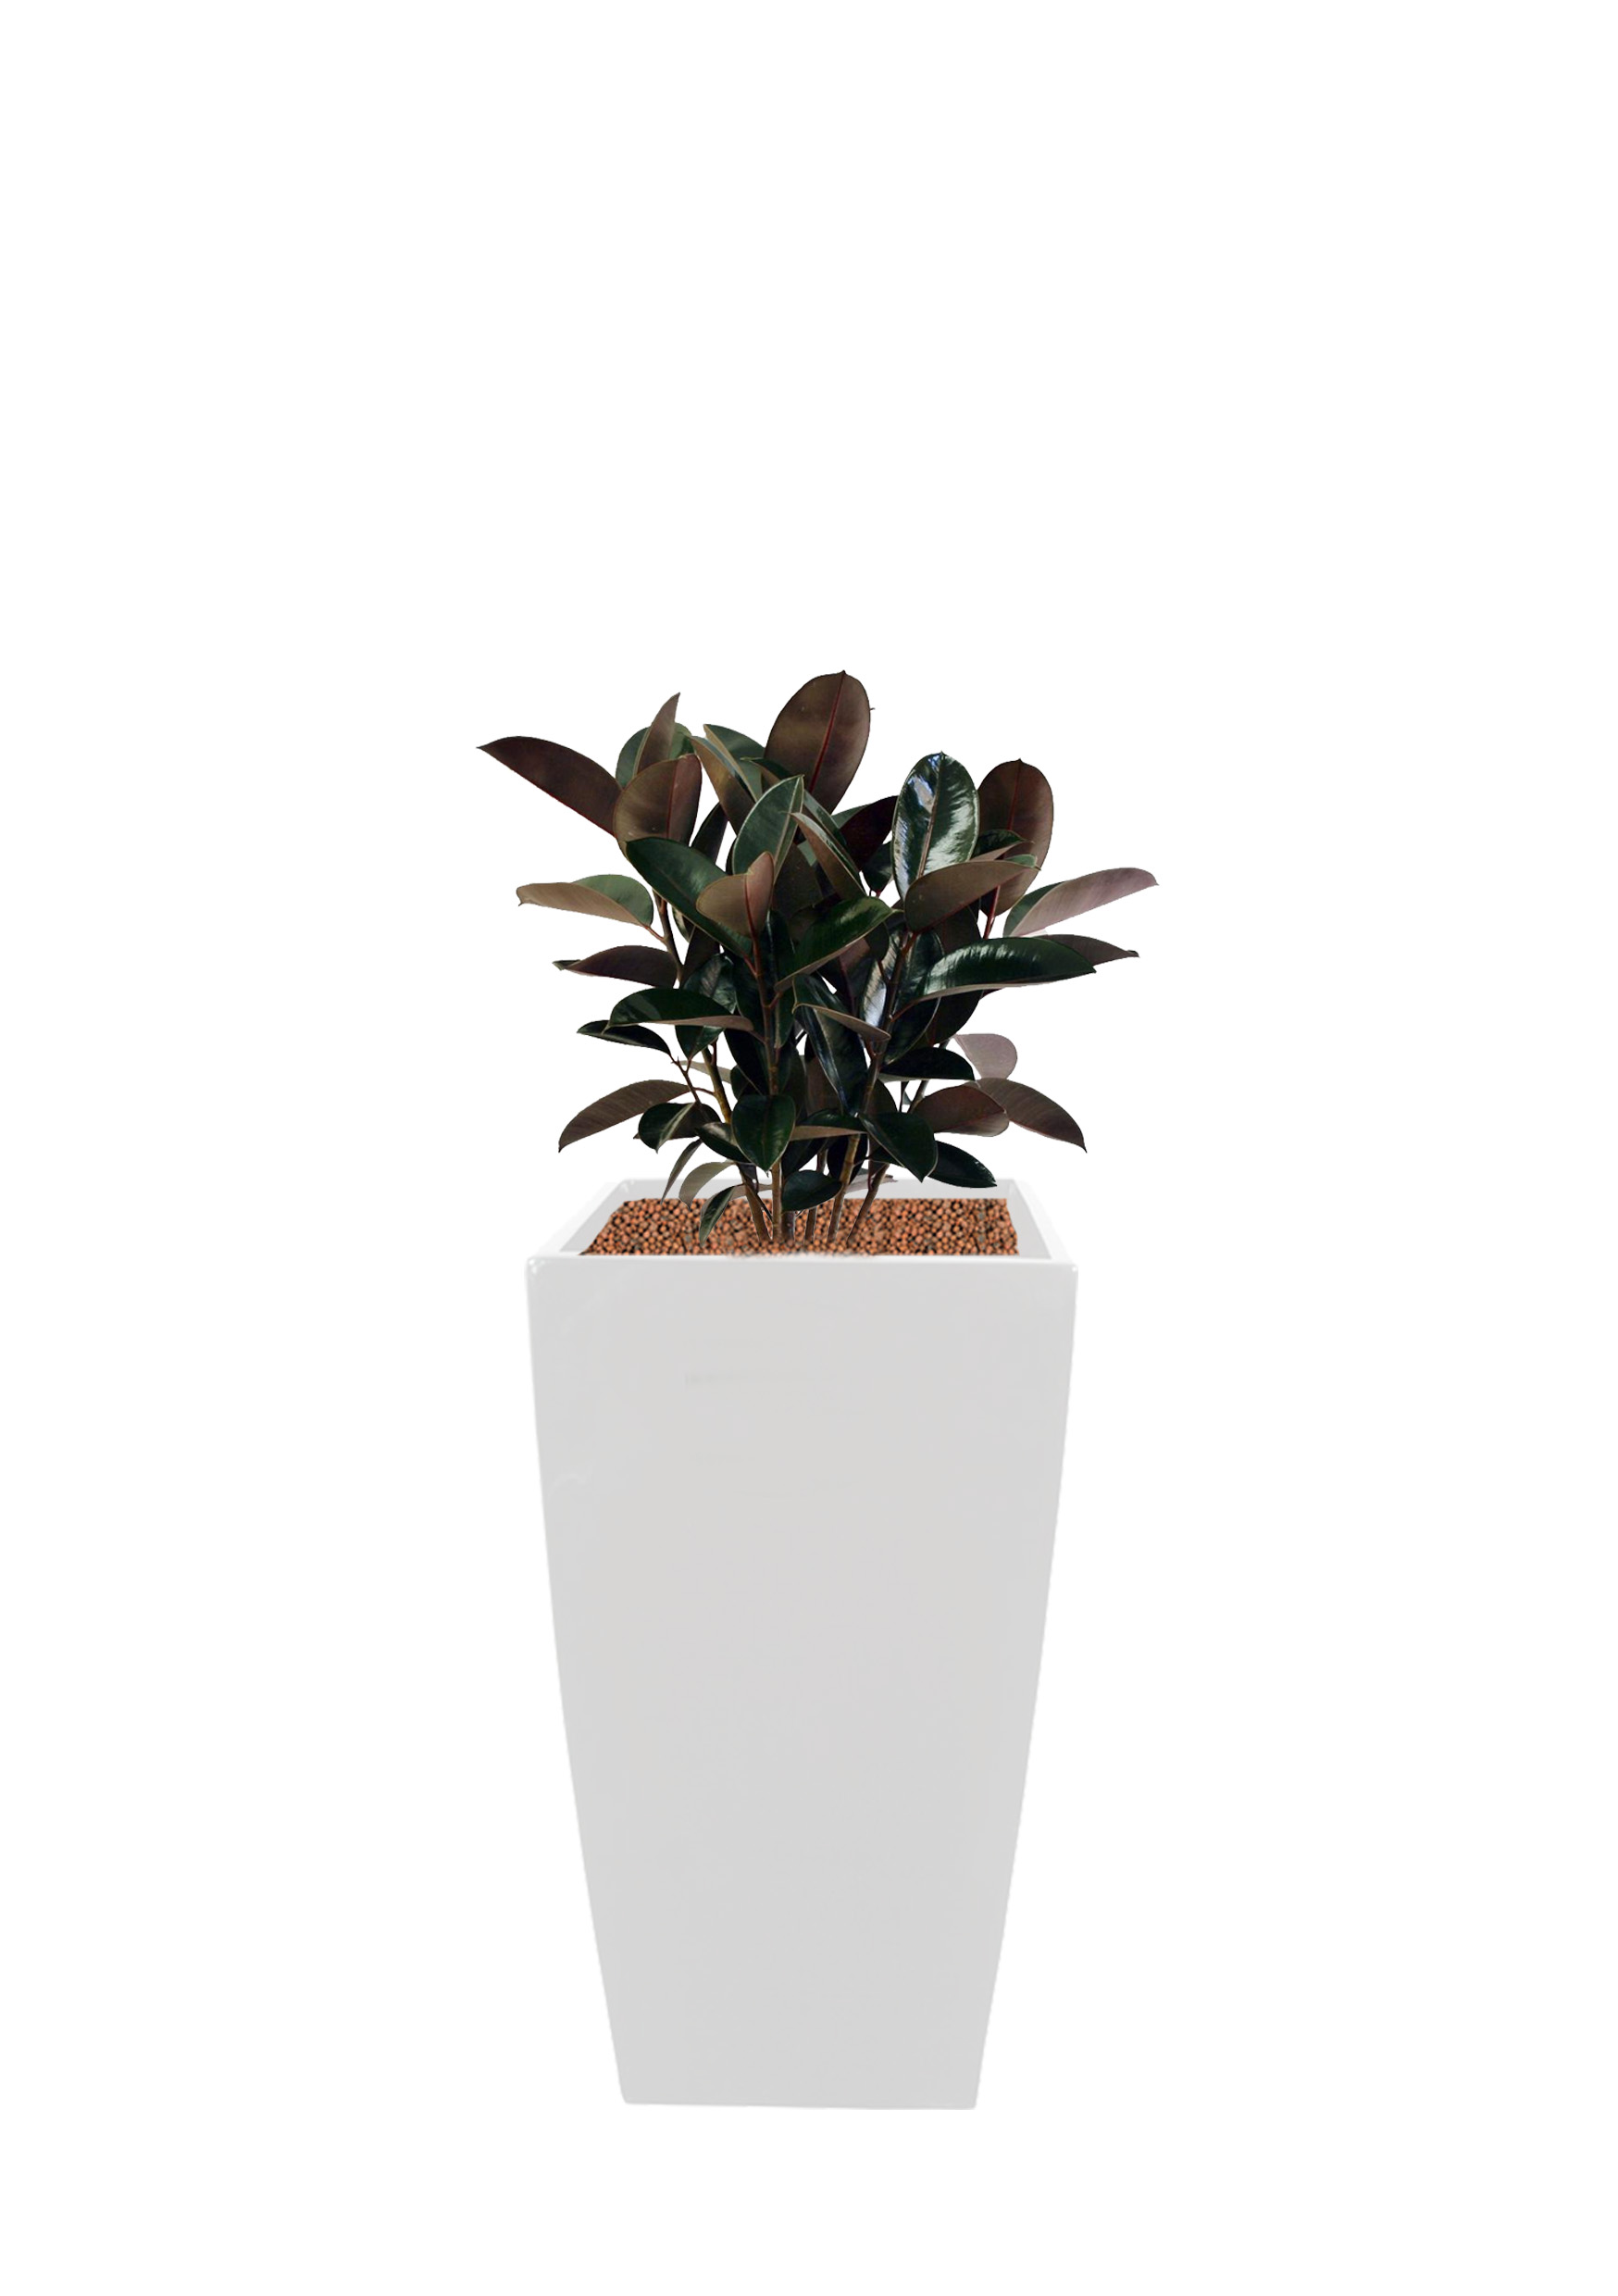 Category D - $22.00 inclusive of plants, pots and maintenance